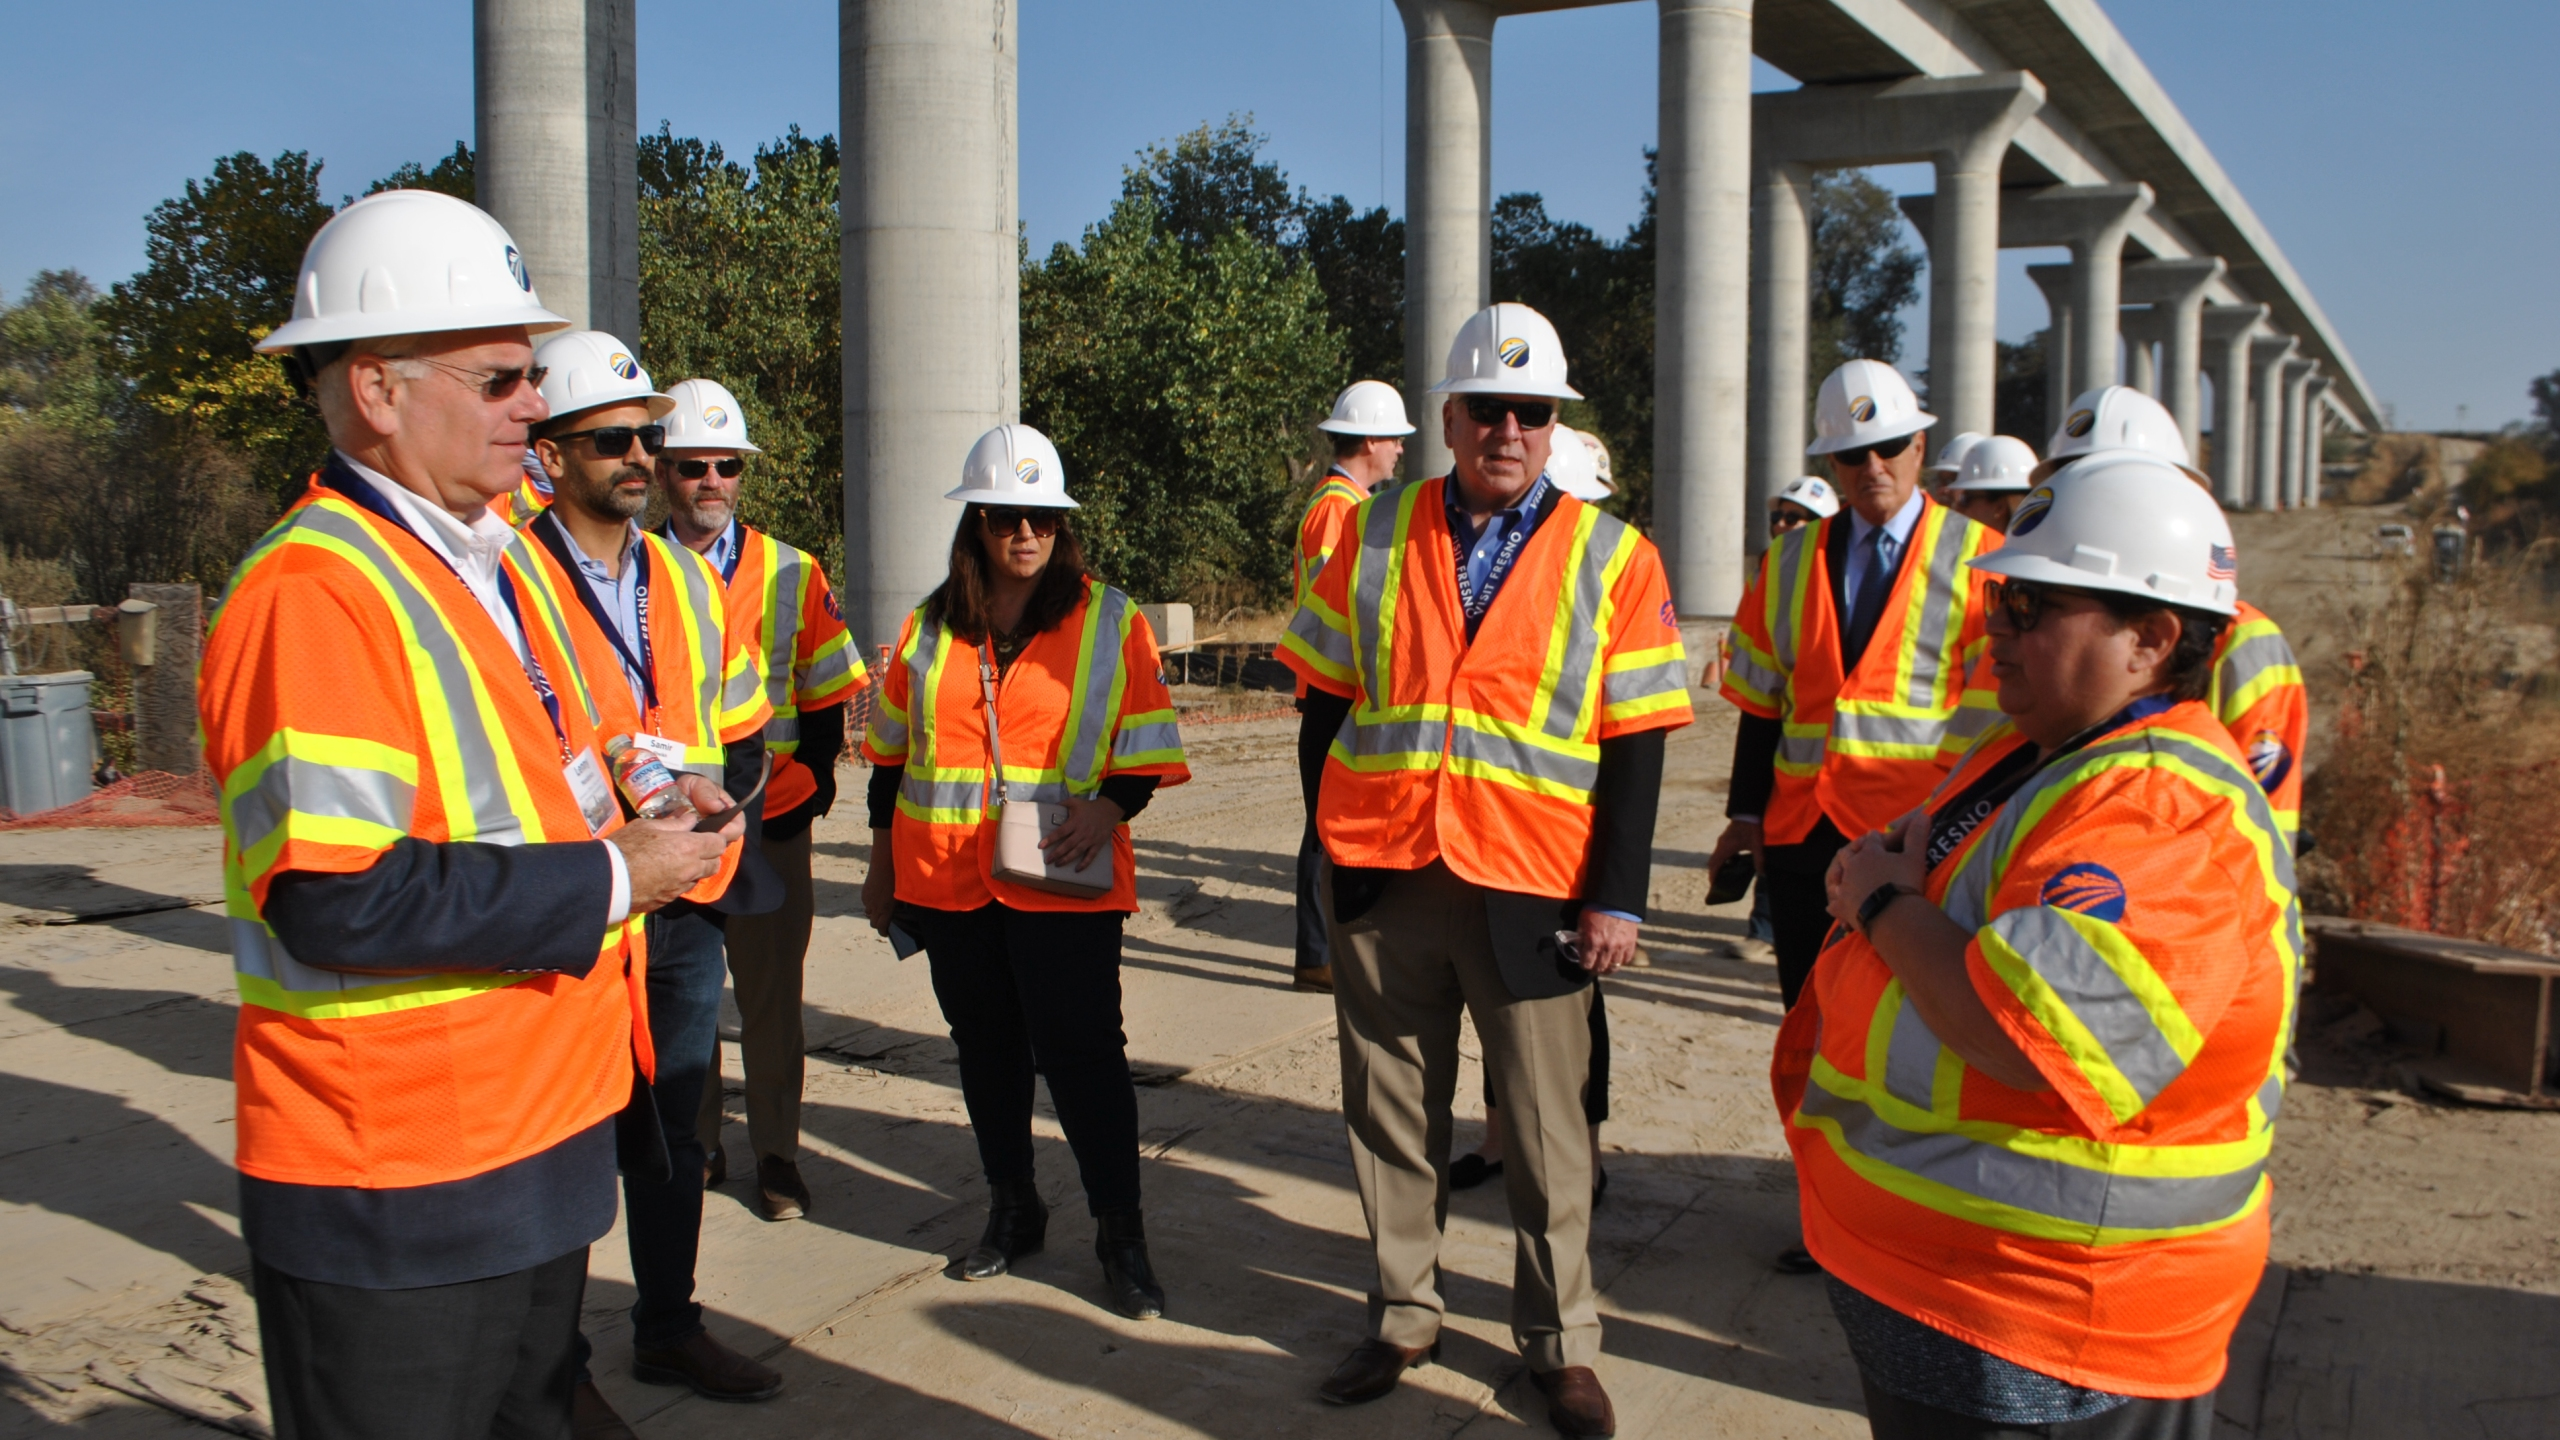 Officials lead a tour of several construction sites on California's high-speed rail project in Fresno on Nov. 6, 2019. (Credit: California High-Speed Rail Authority)